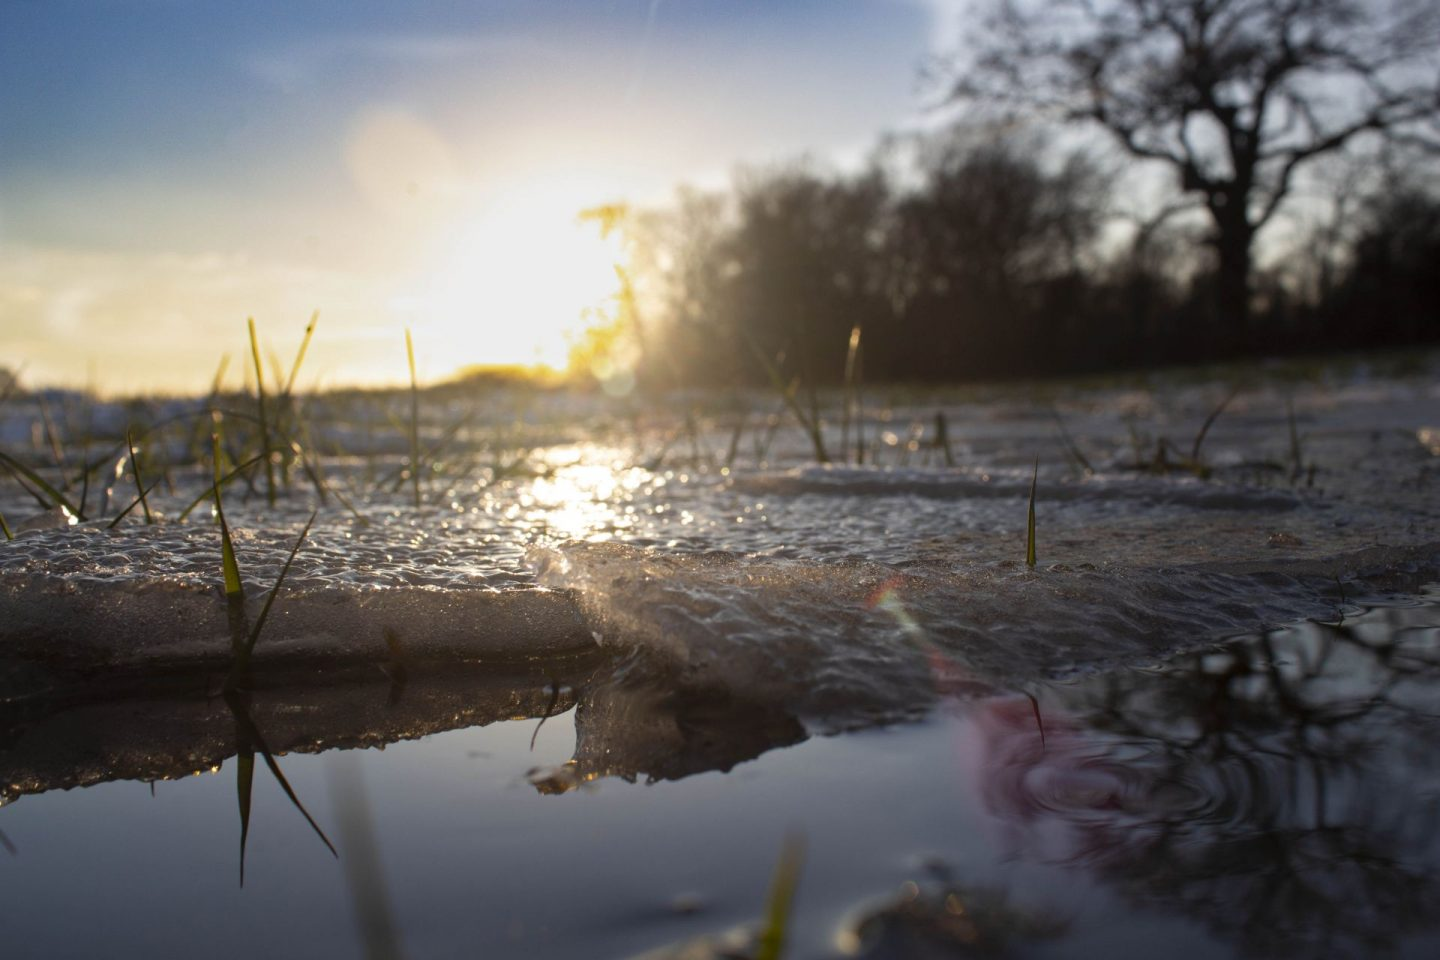 The great outdoors. Photograph of ice in a puddle